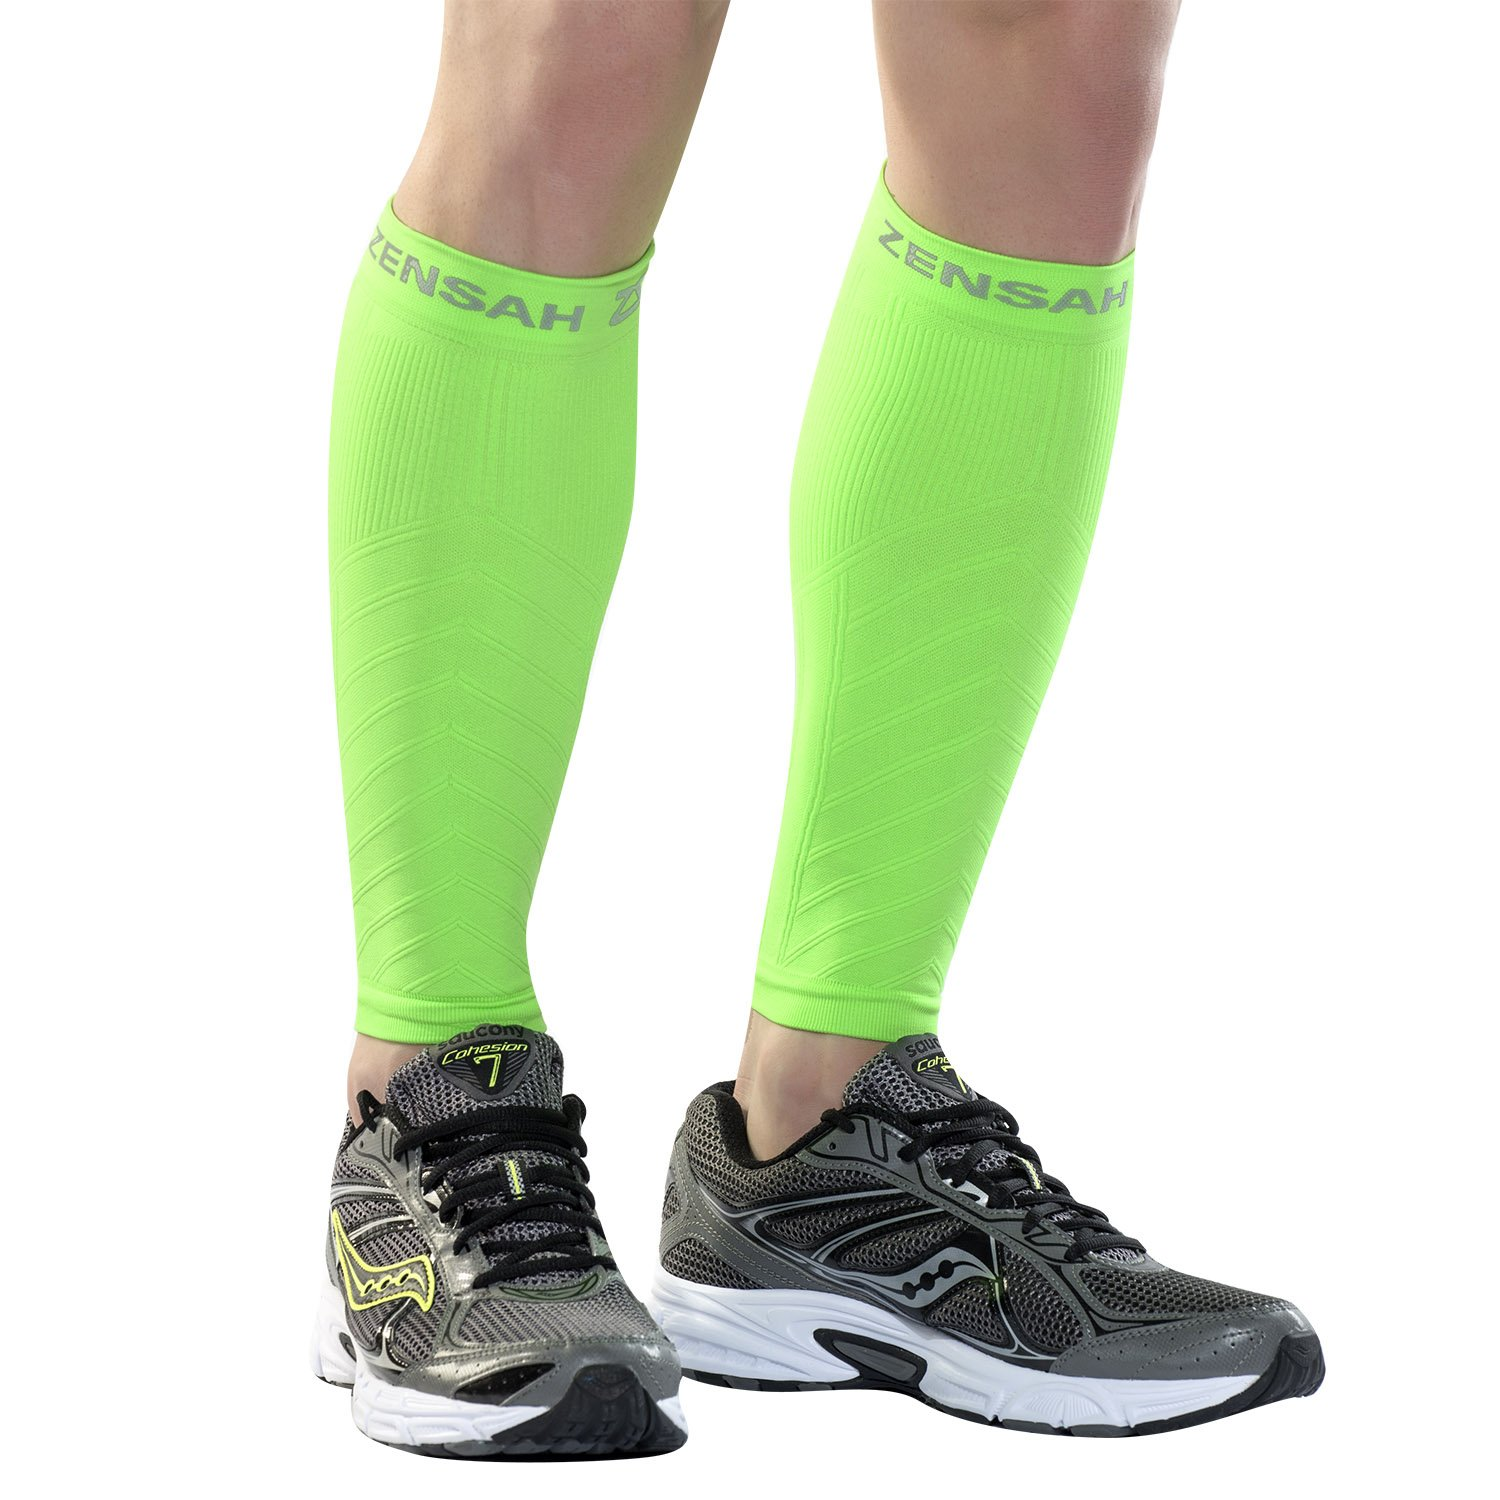 Zensah Compression Leg Sleeves, Neon Green, X-Small/Small